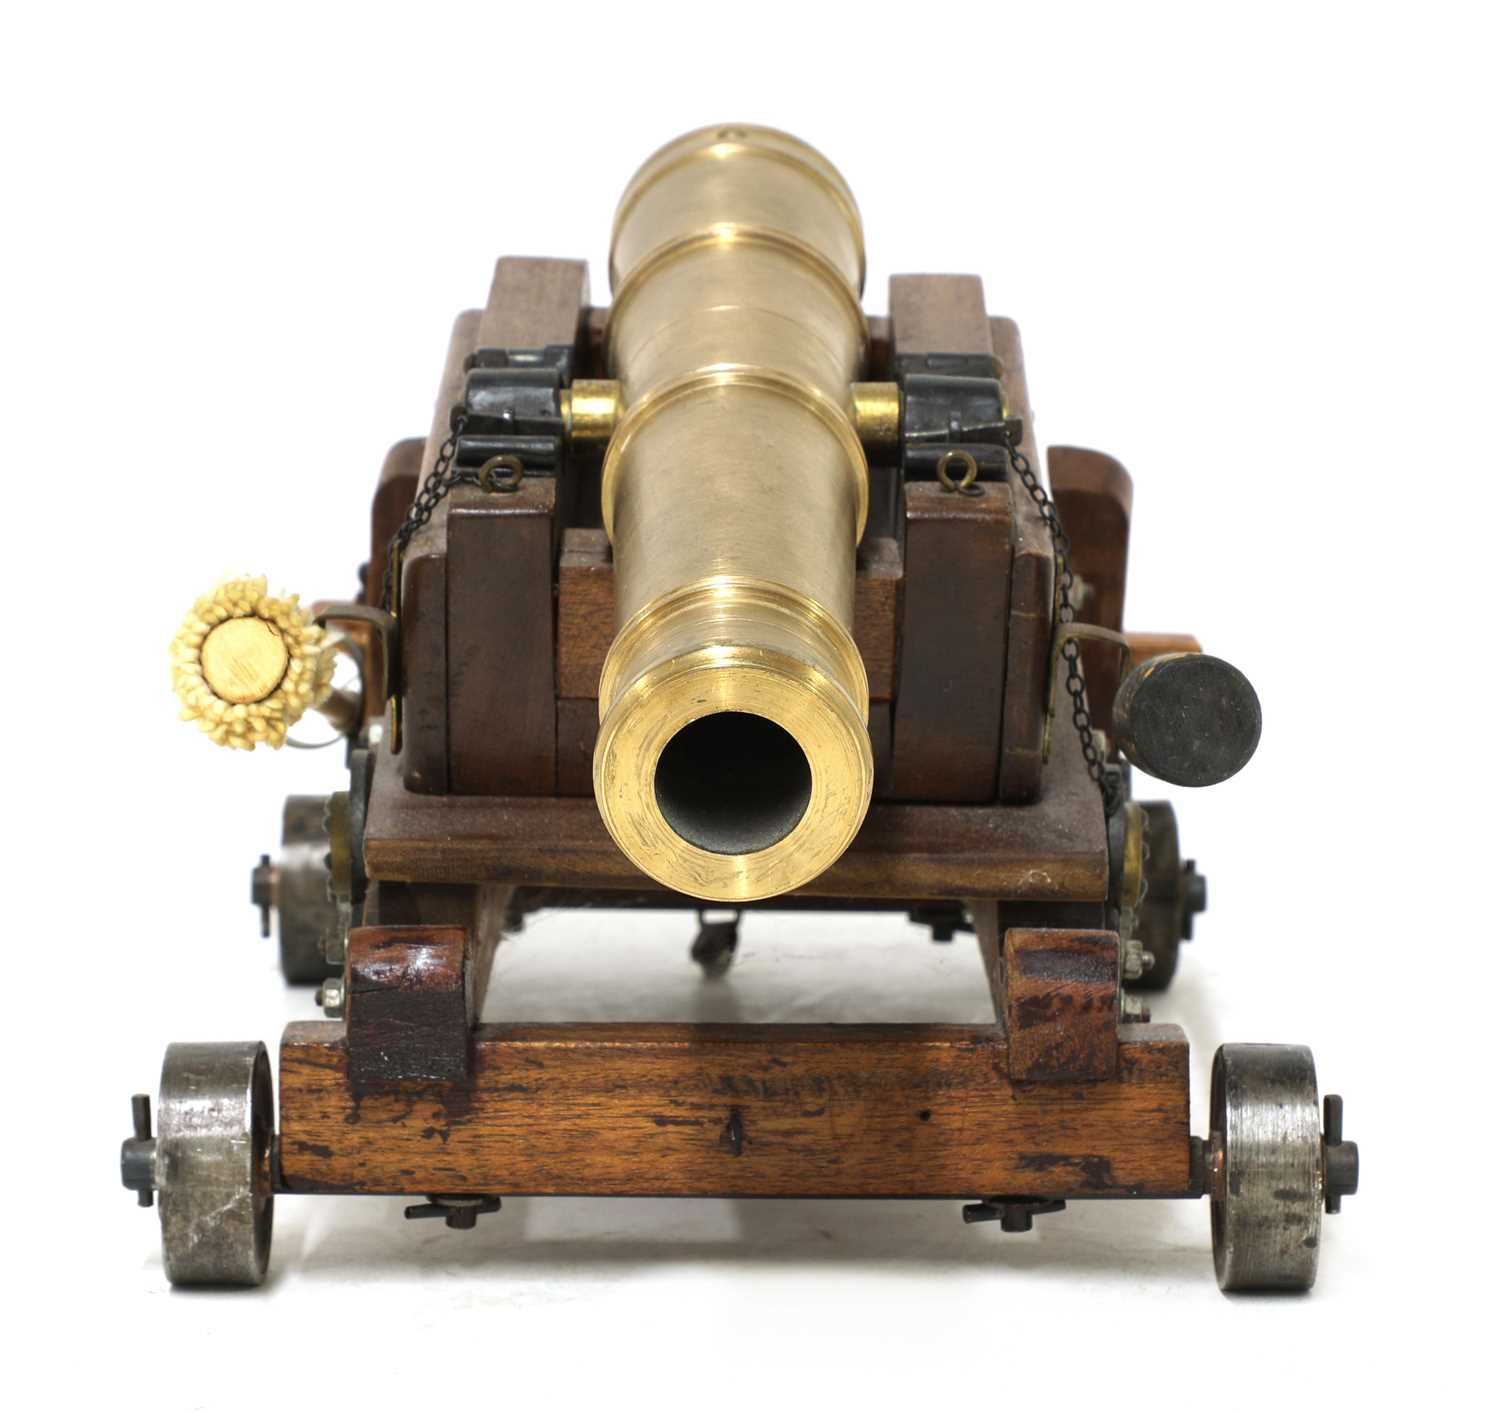 A model of a late 18th century 24lb Gibraltar cannon, - Image 2 of 6